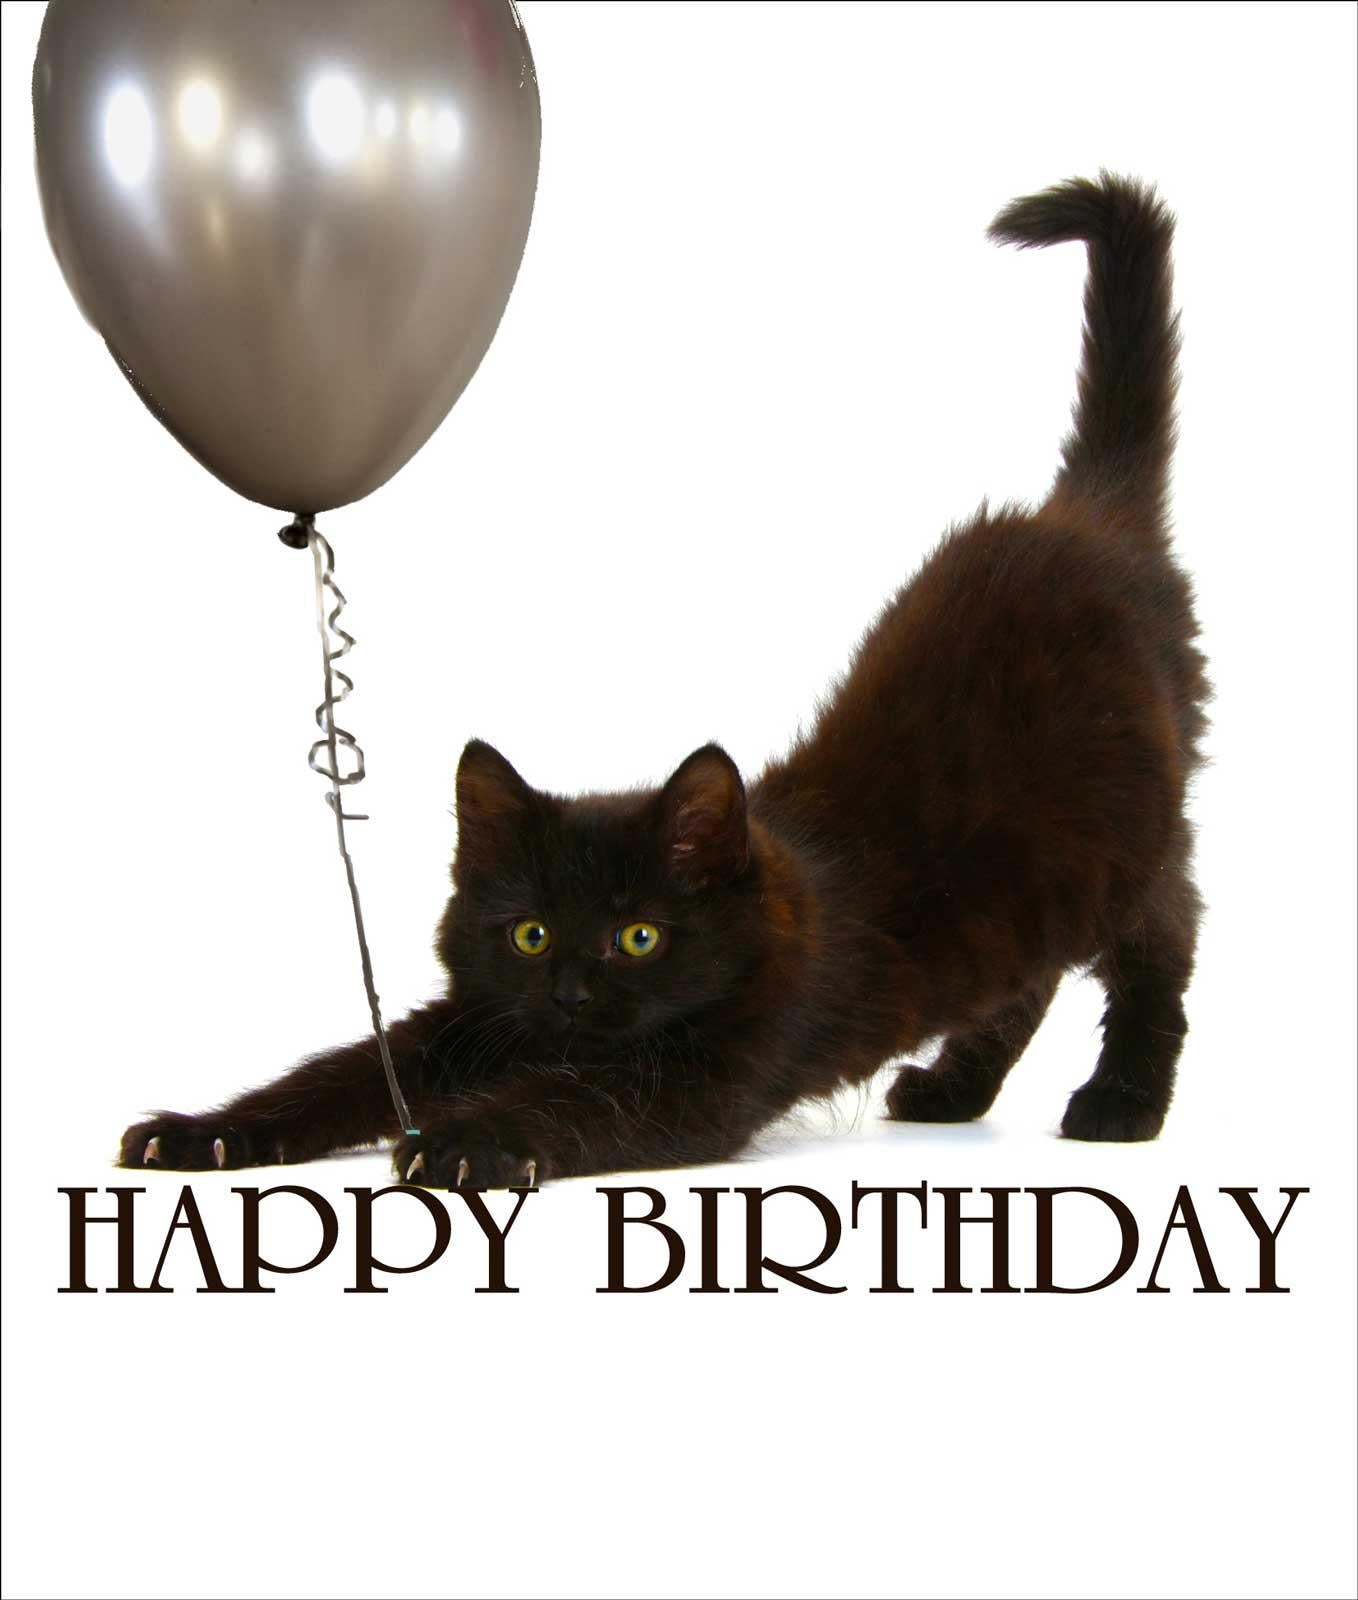 Happy Birthday Kitten Birthday Card  PURRFECT CAT GIFTS